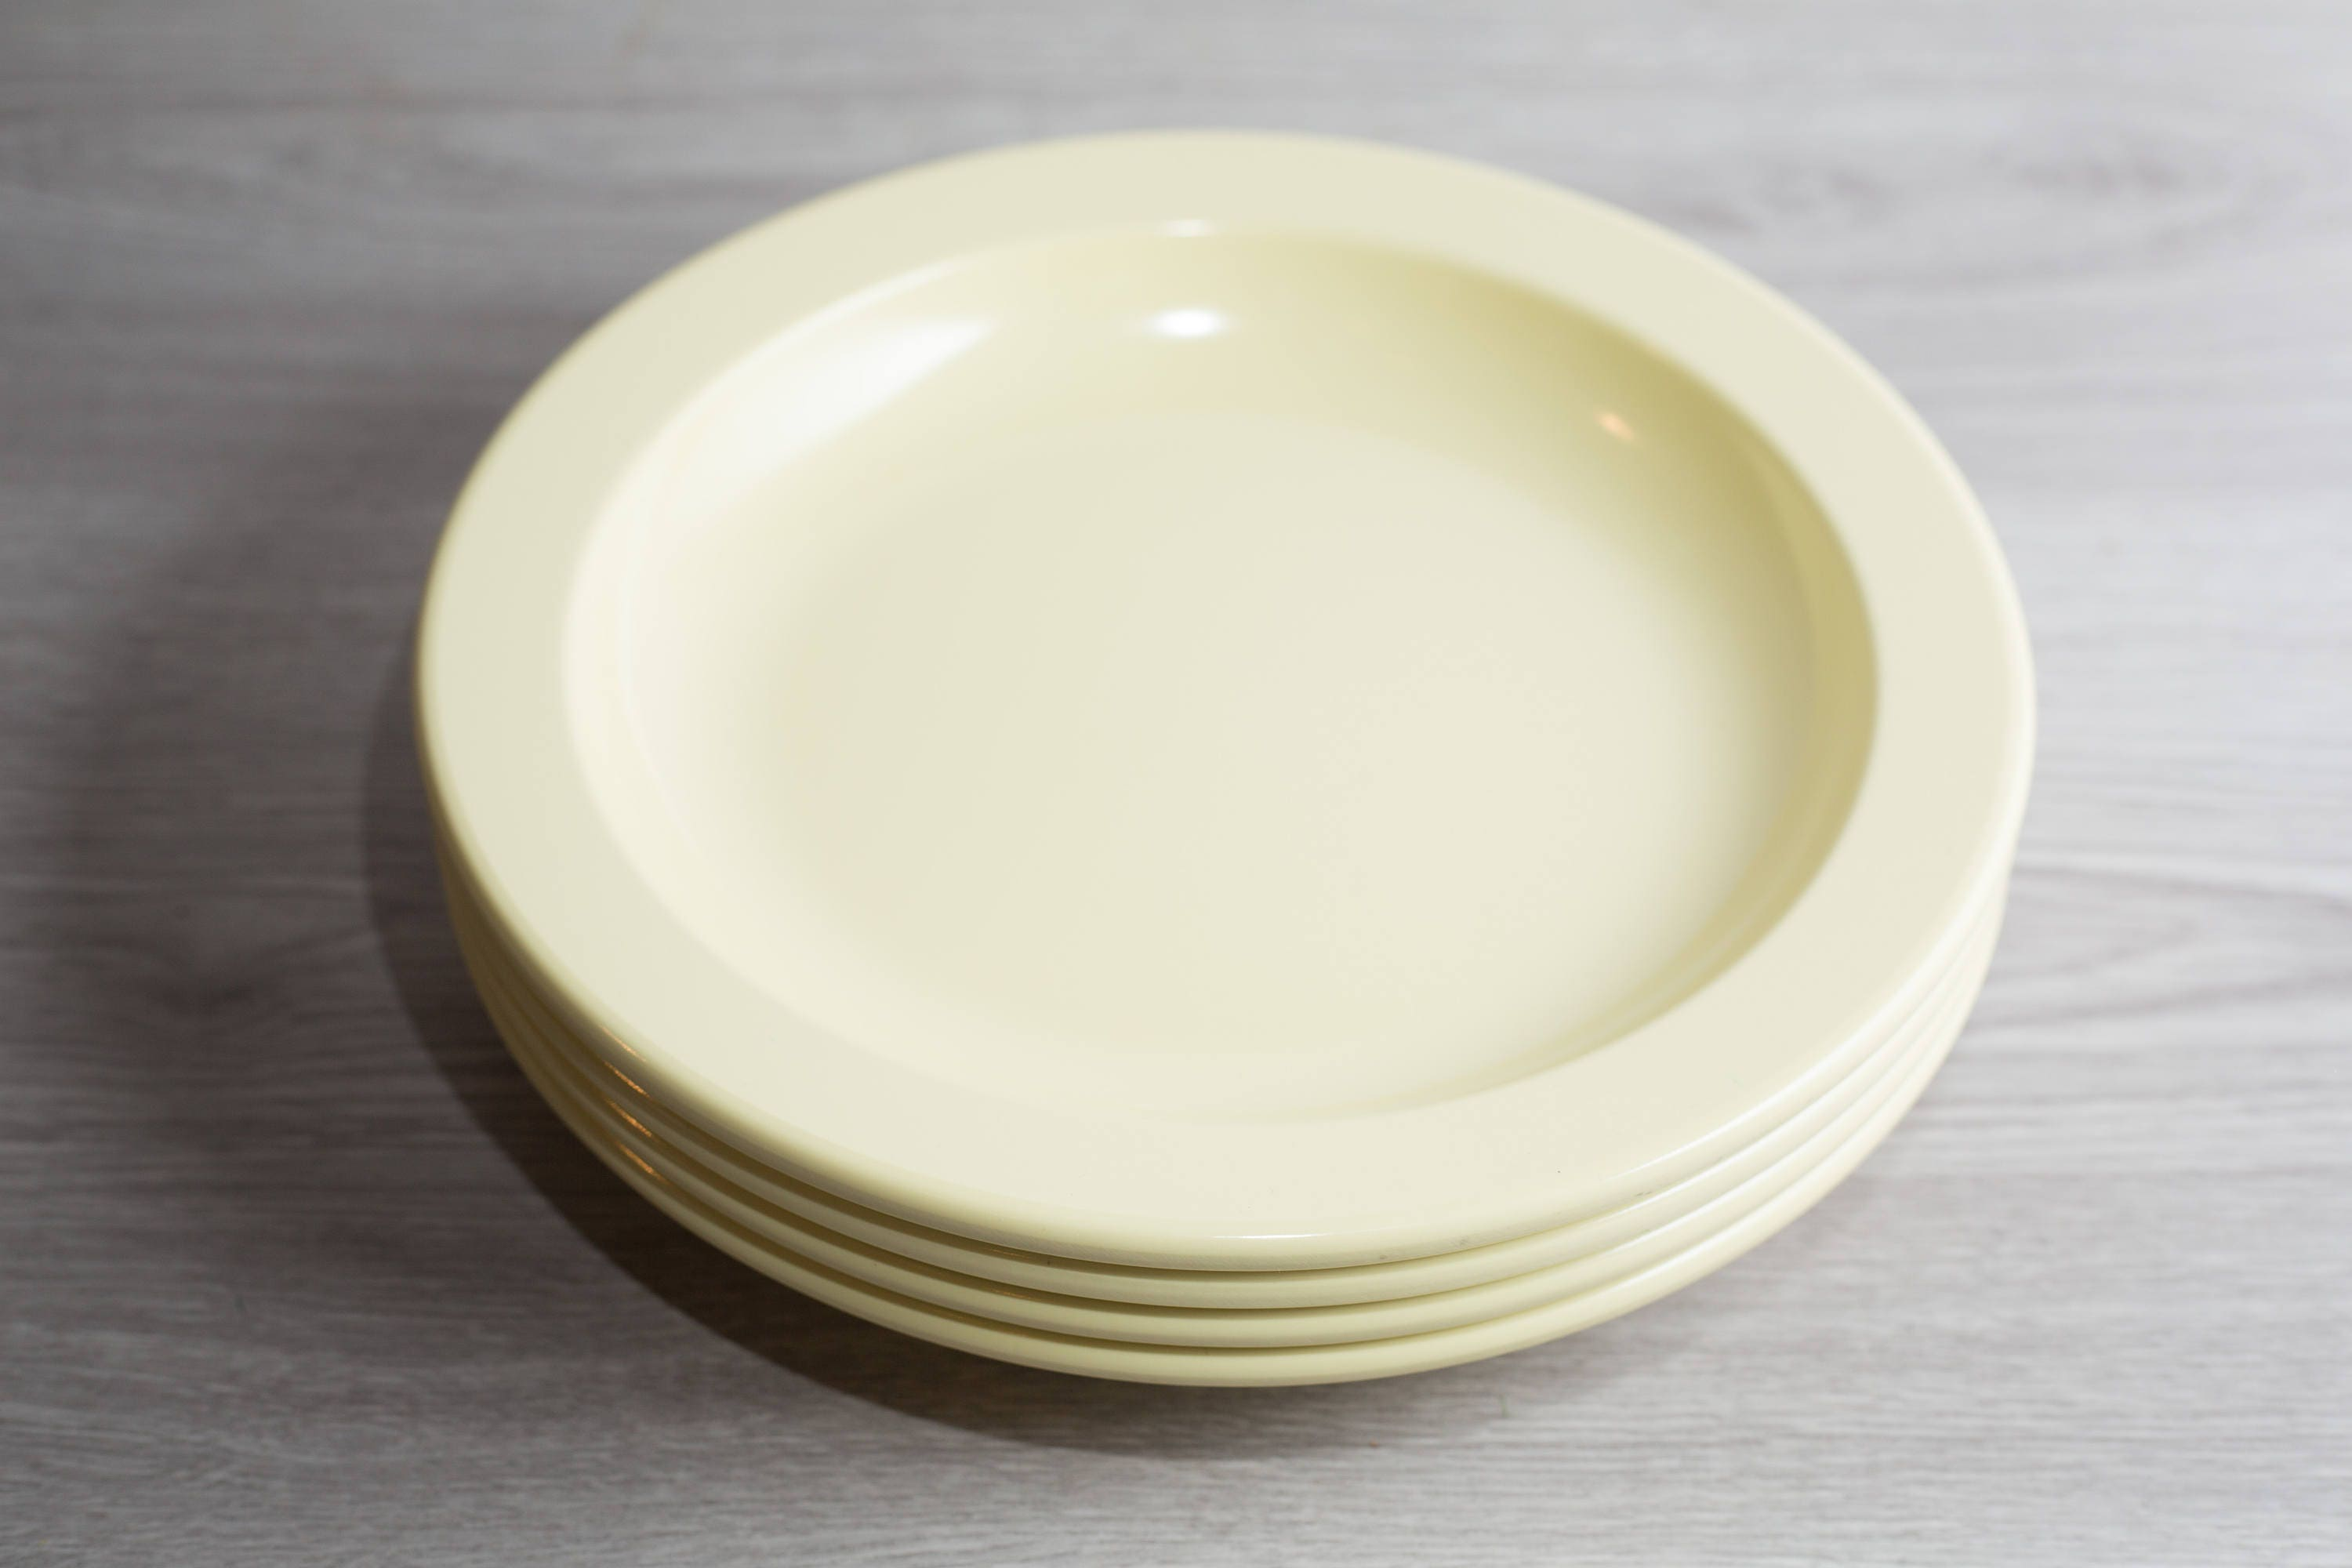 Vintage Mistral Melamine Plates 4 piece Set of Soft Yellow Dinnerware Dinner Plates by Hamelin / Made in Canada / Pastel C&ing Bowls & Vintage Mistral Melamine Plates 4 piece Set of Soft Yellow ...